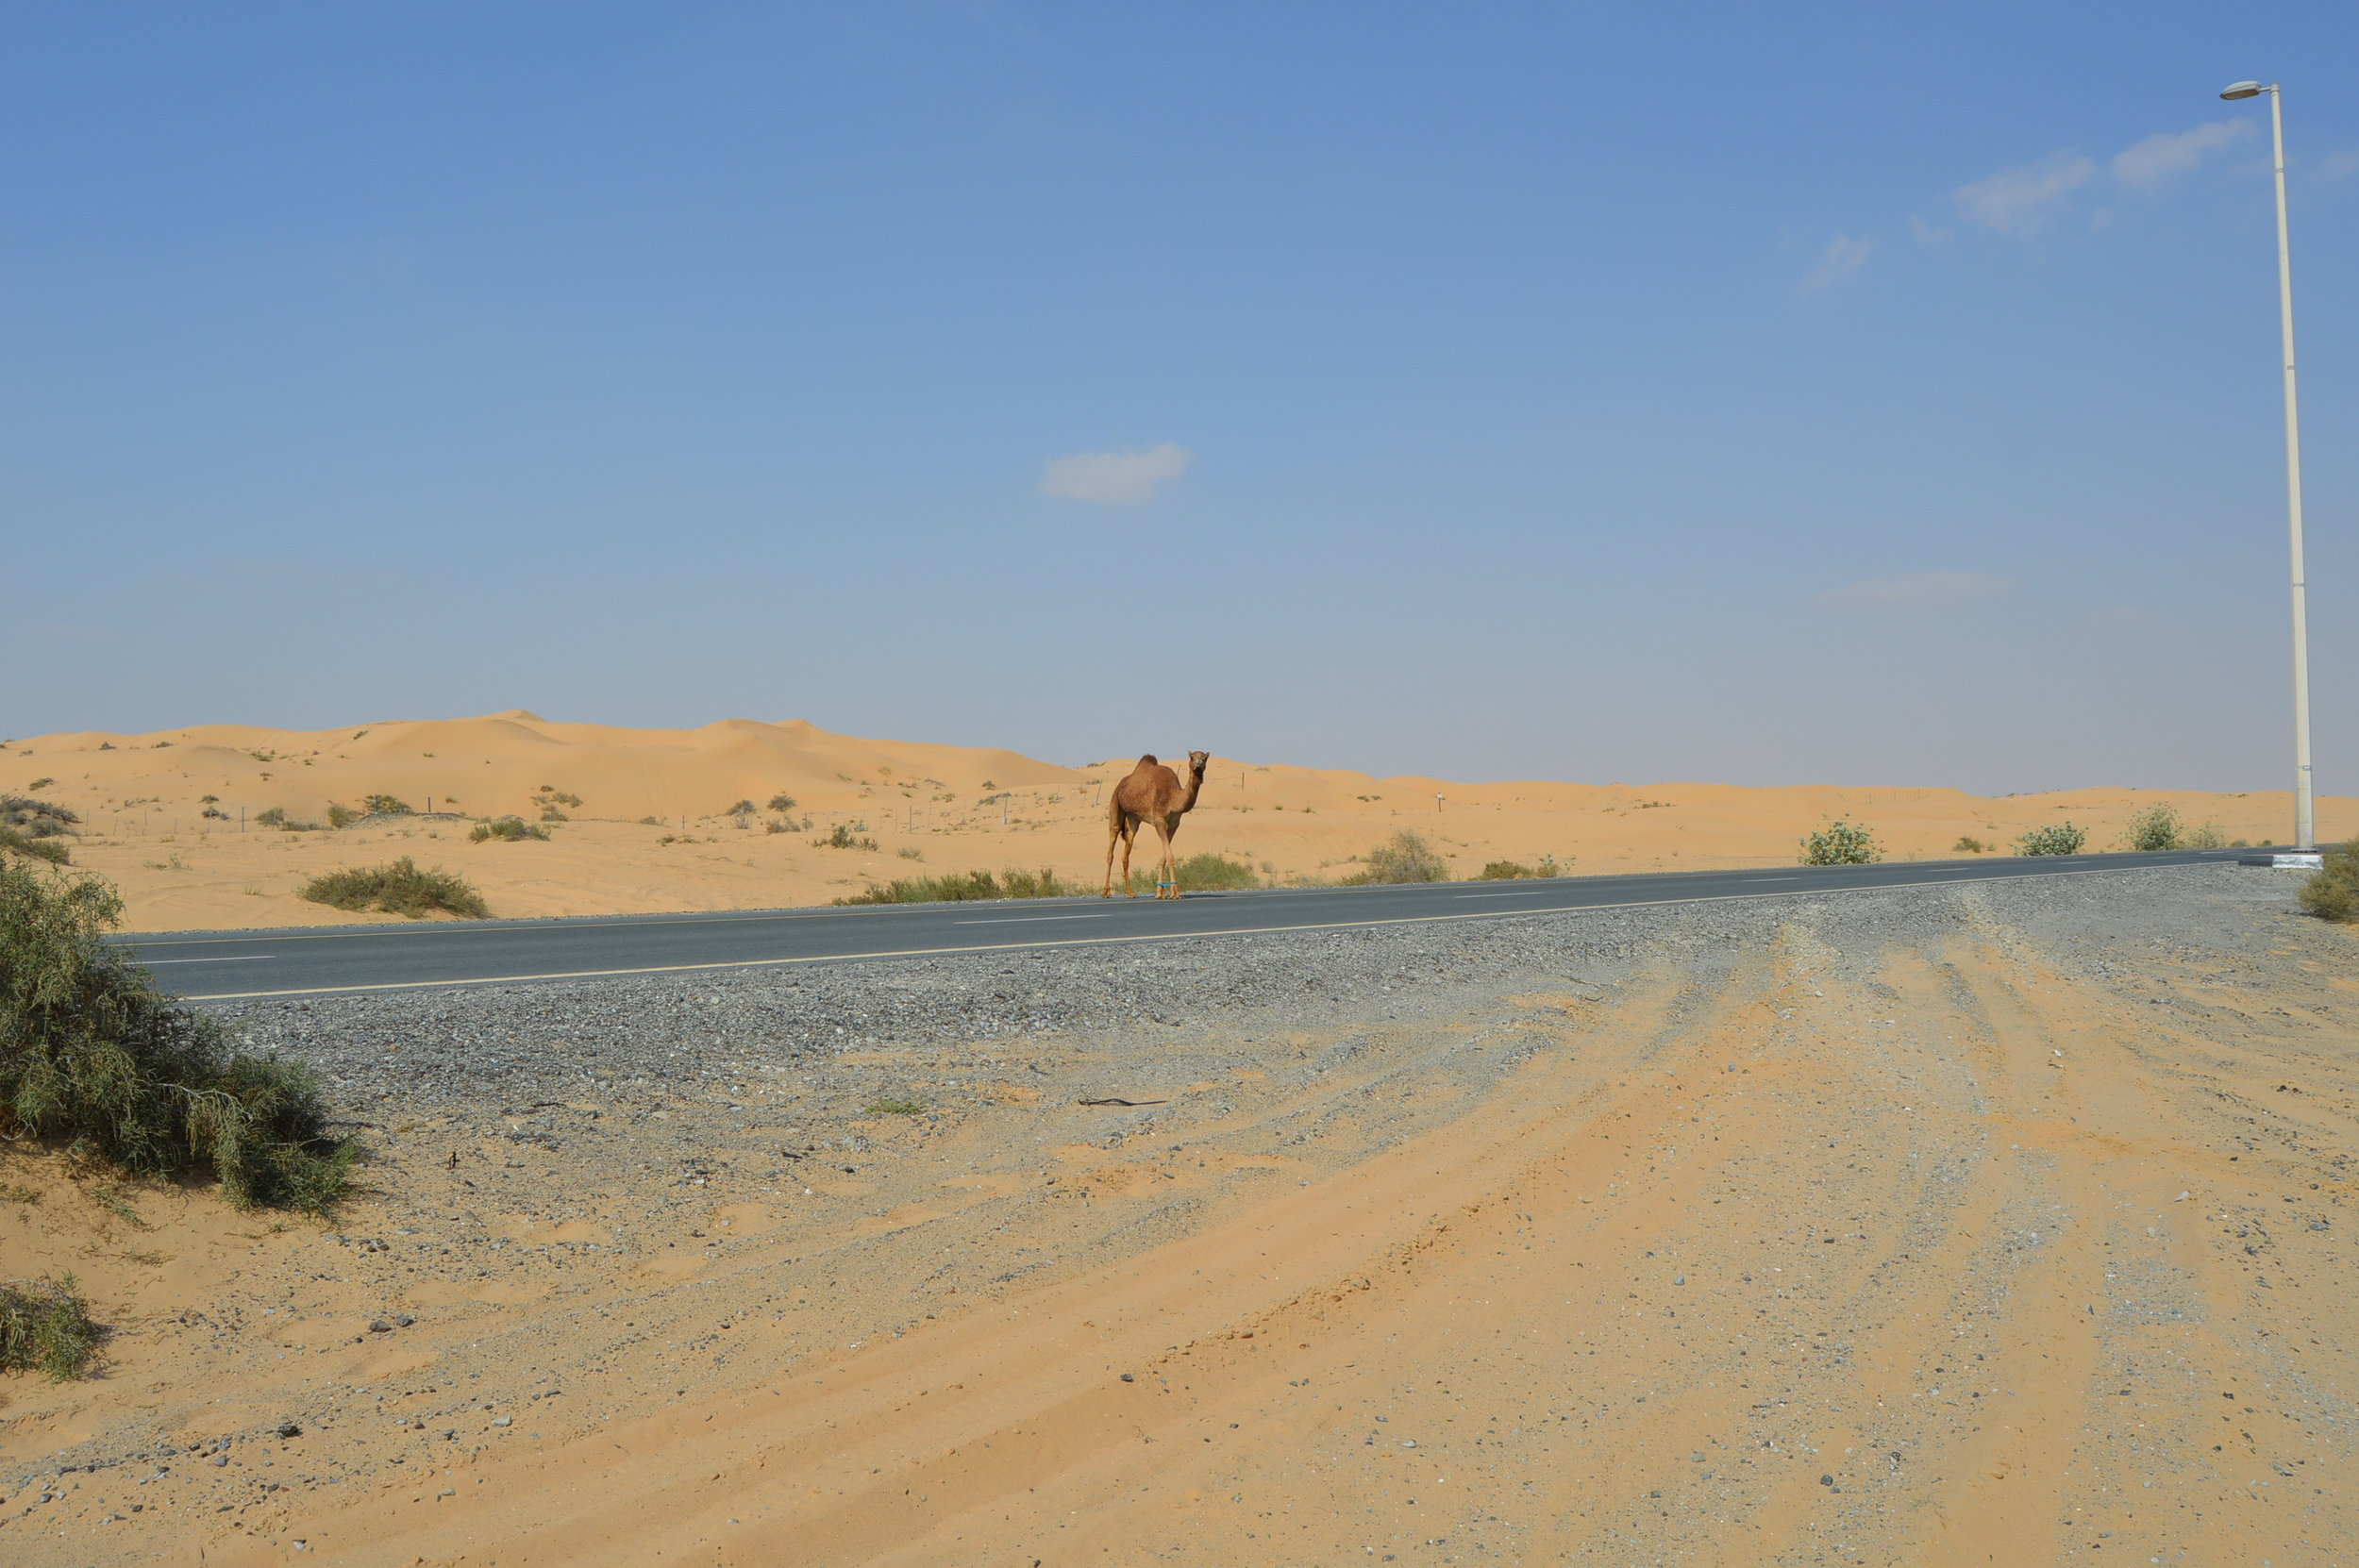 Day 7: - Searching for camels, and our 36 hour travel back to the states.